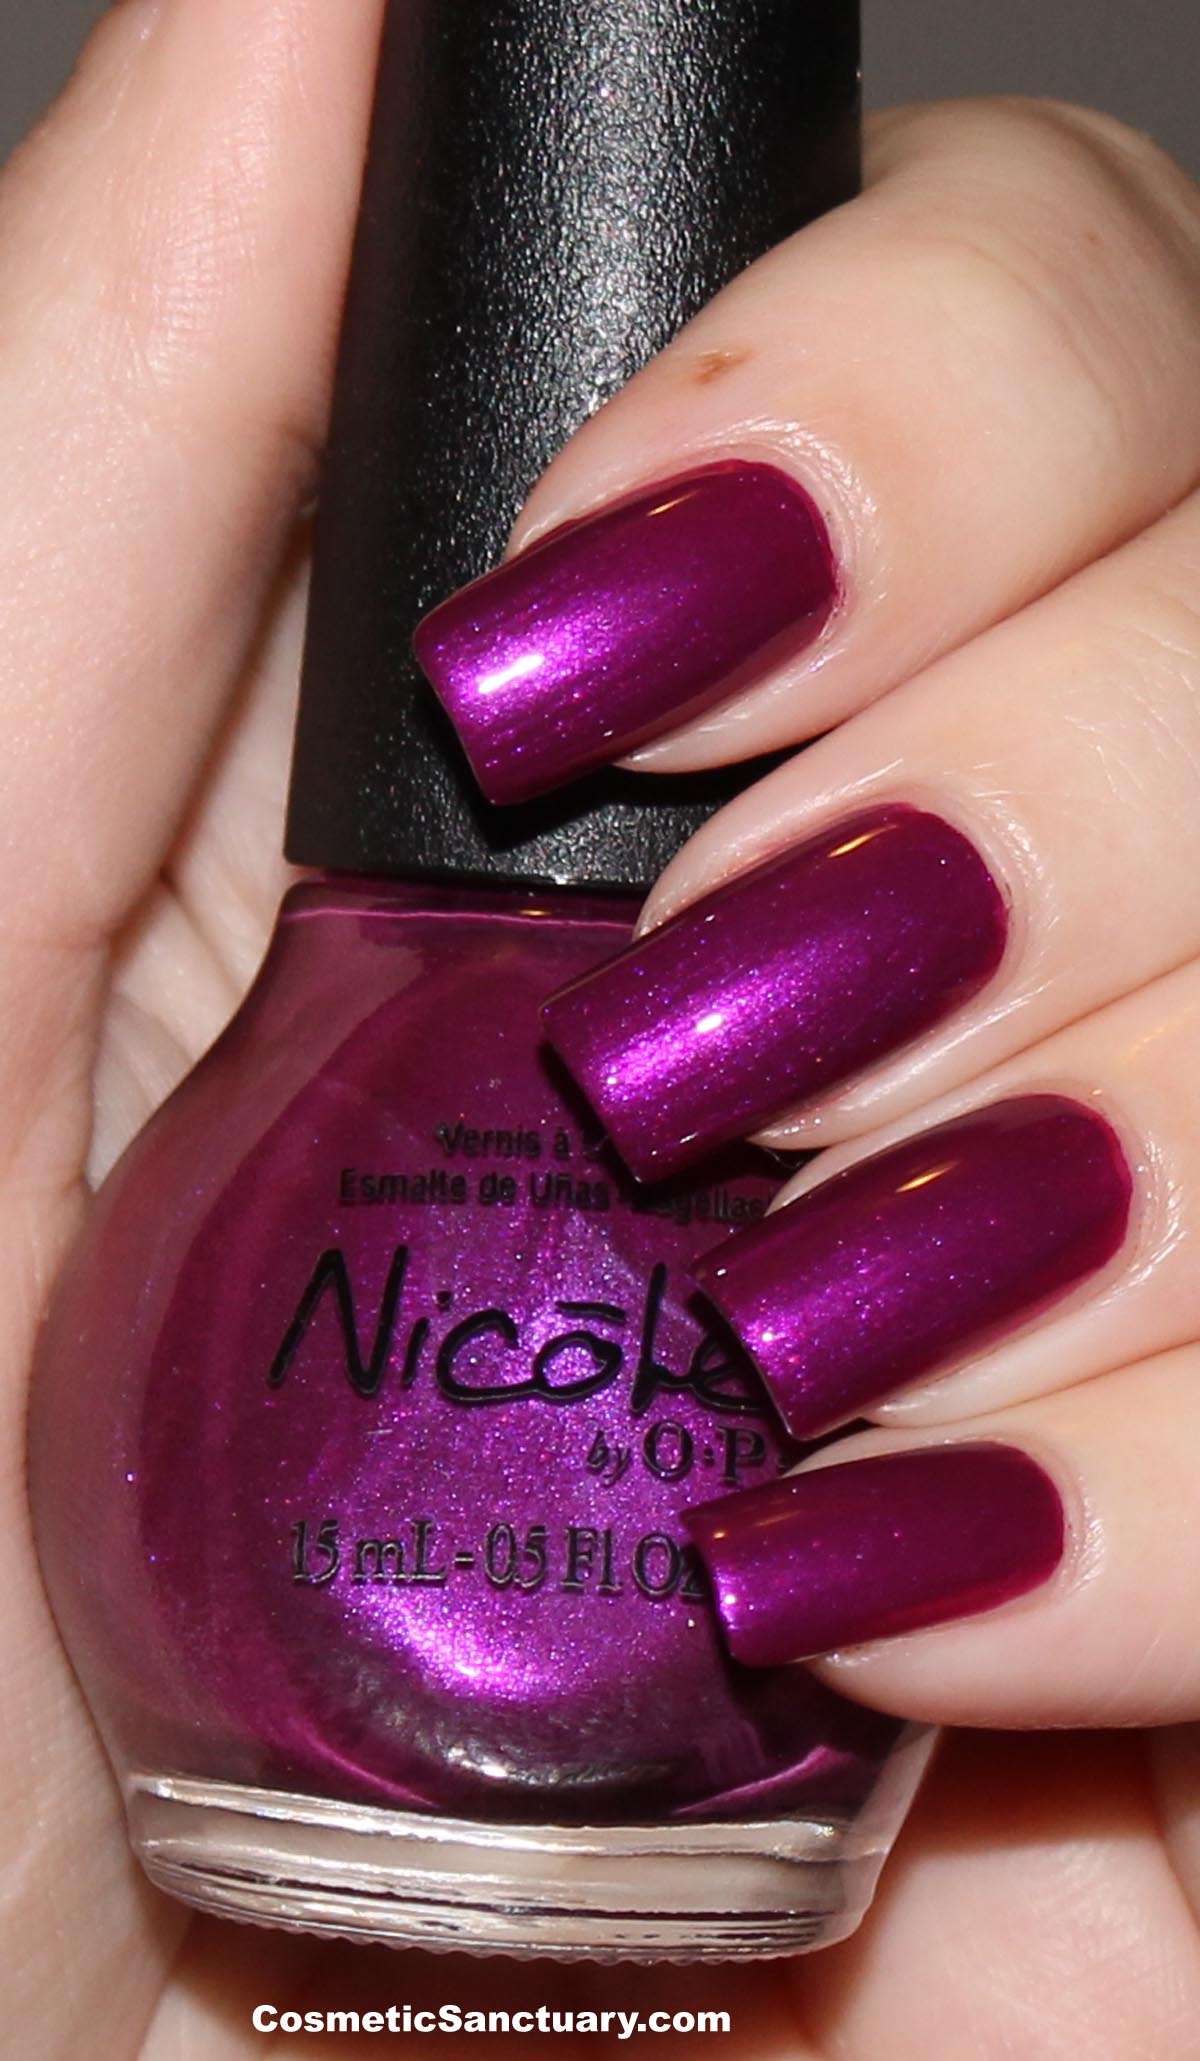 Nicole by OPI Selena Gomez Collection Swatches and Review